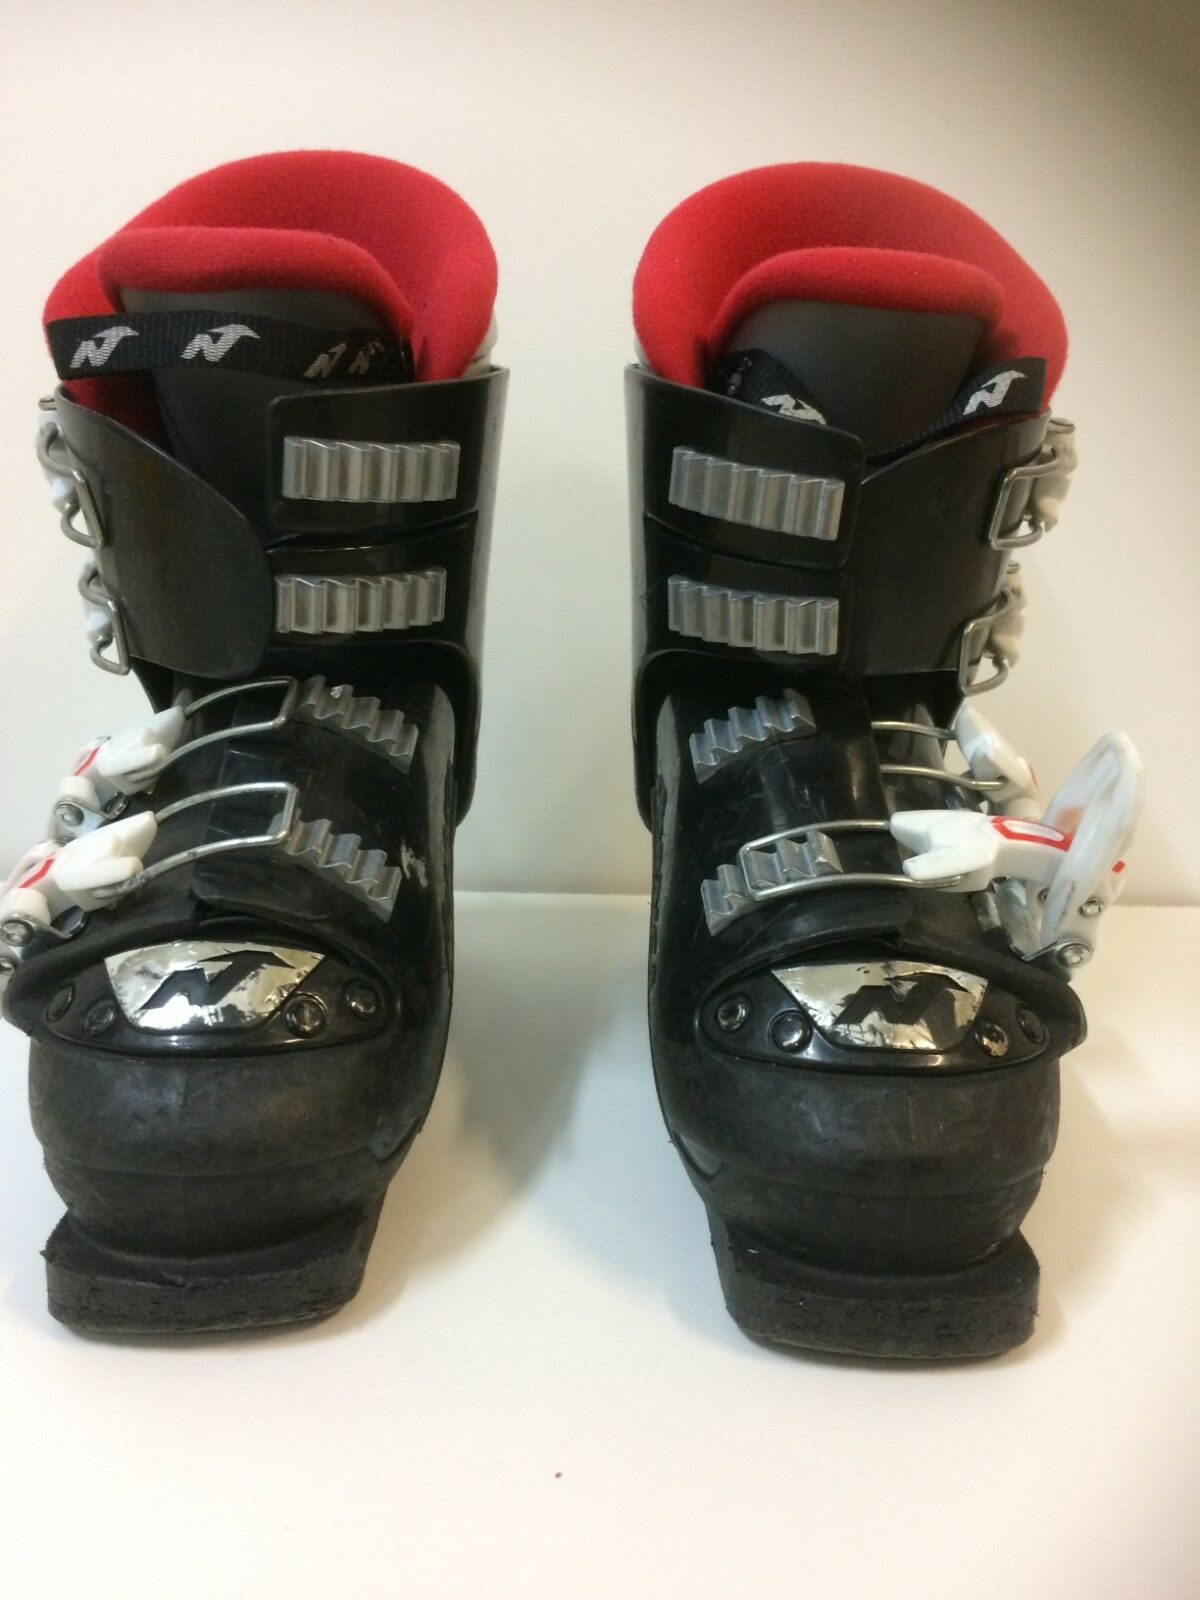 Best offer invited Kids  ski shoes used Ski Boots NORDICA 250 mm  lowest prices